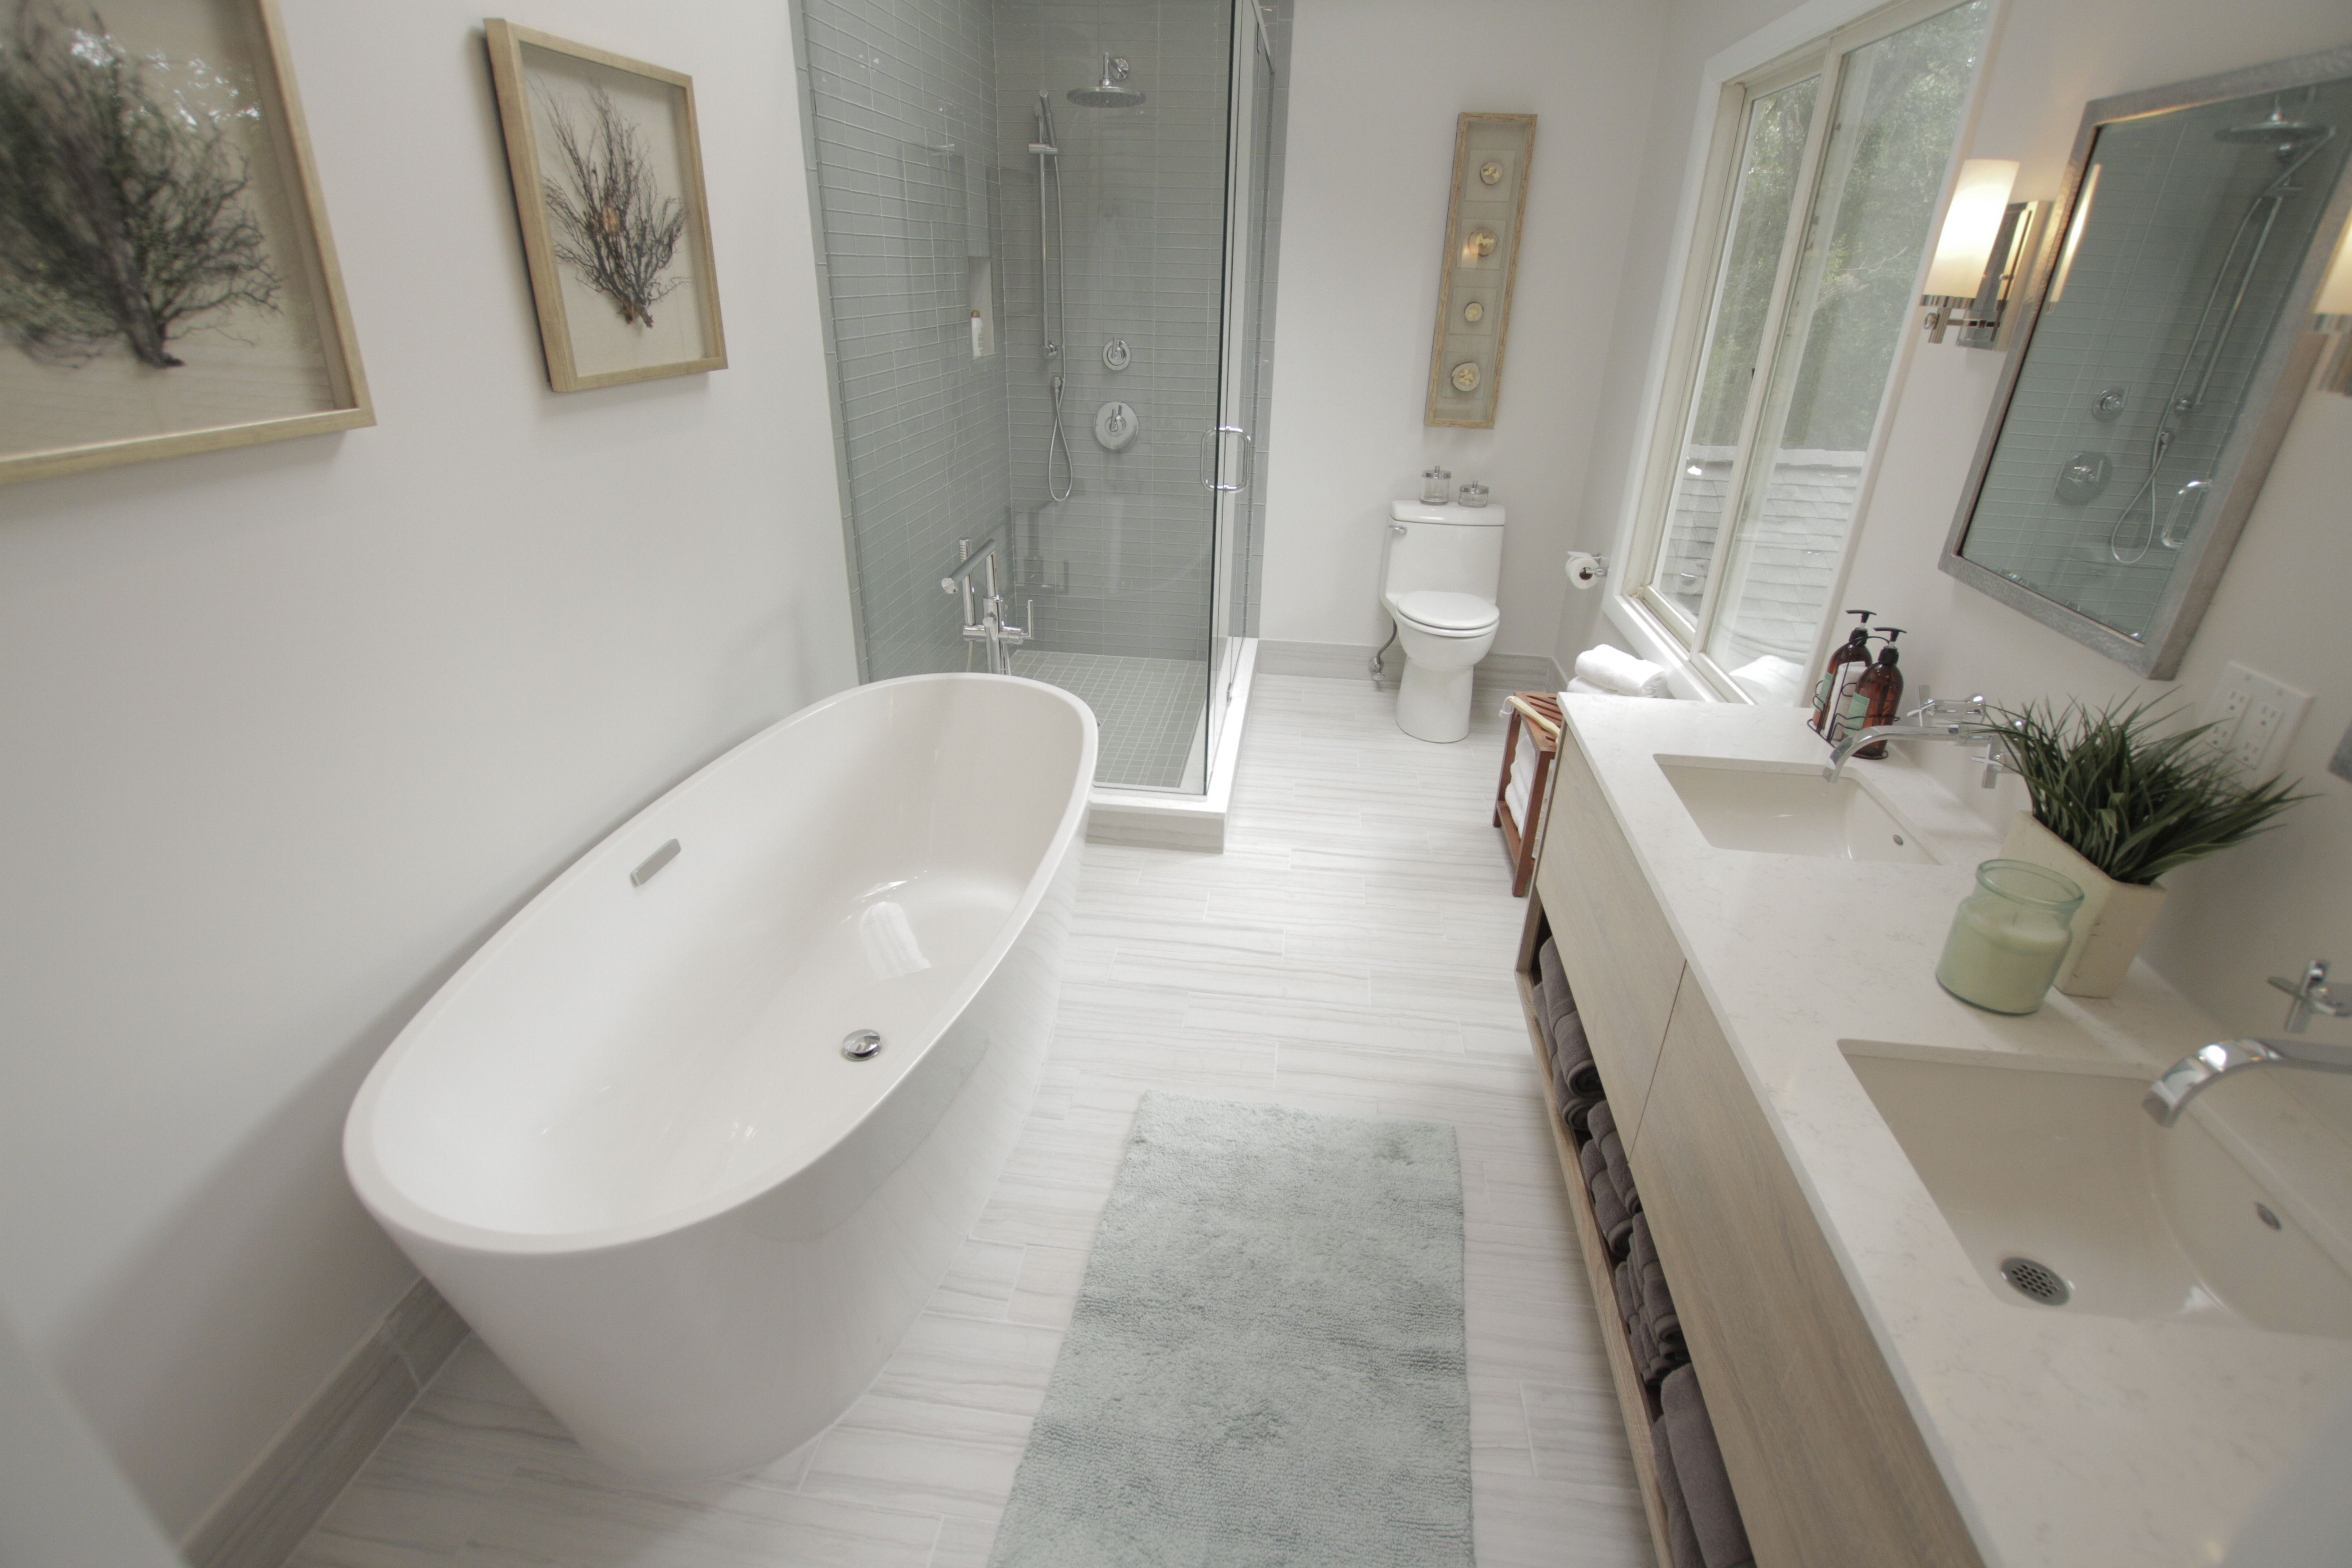 Featuring the Coastal Freestanding Tub, Champion 4 Toilet and Studio ...